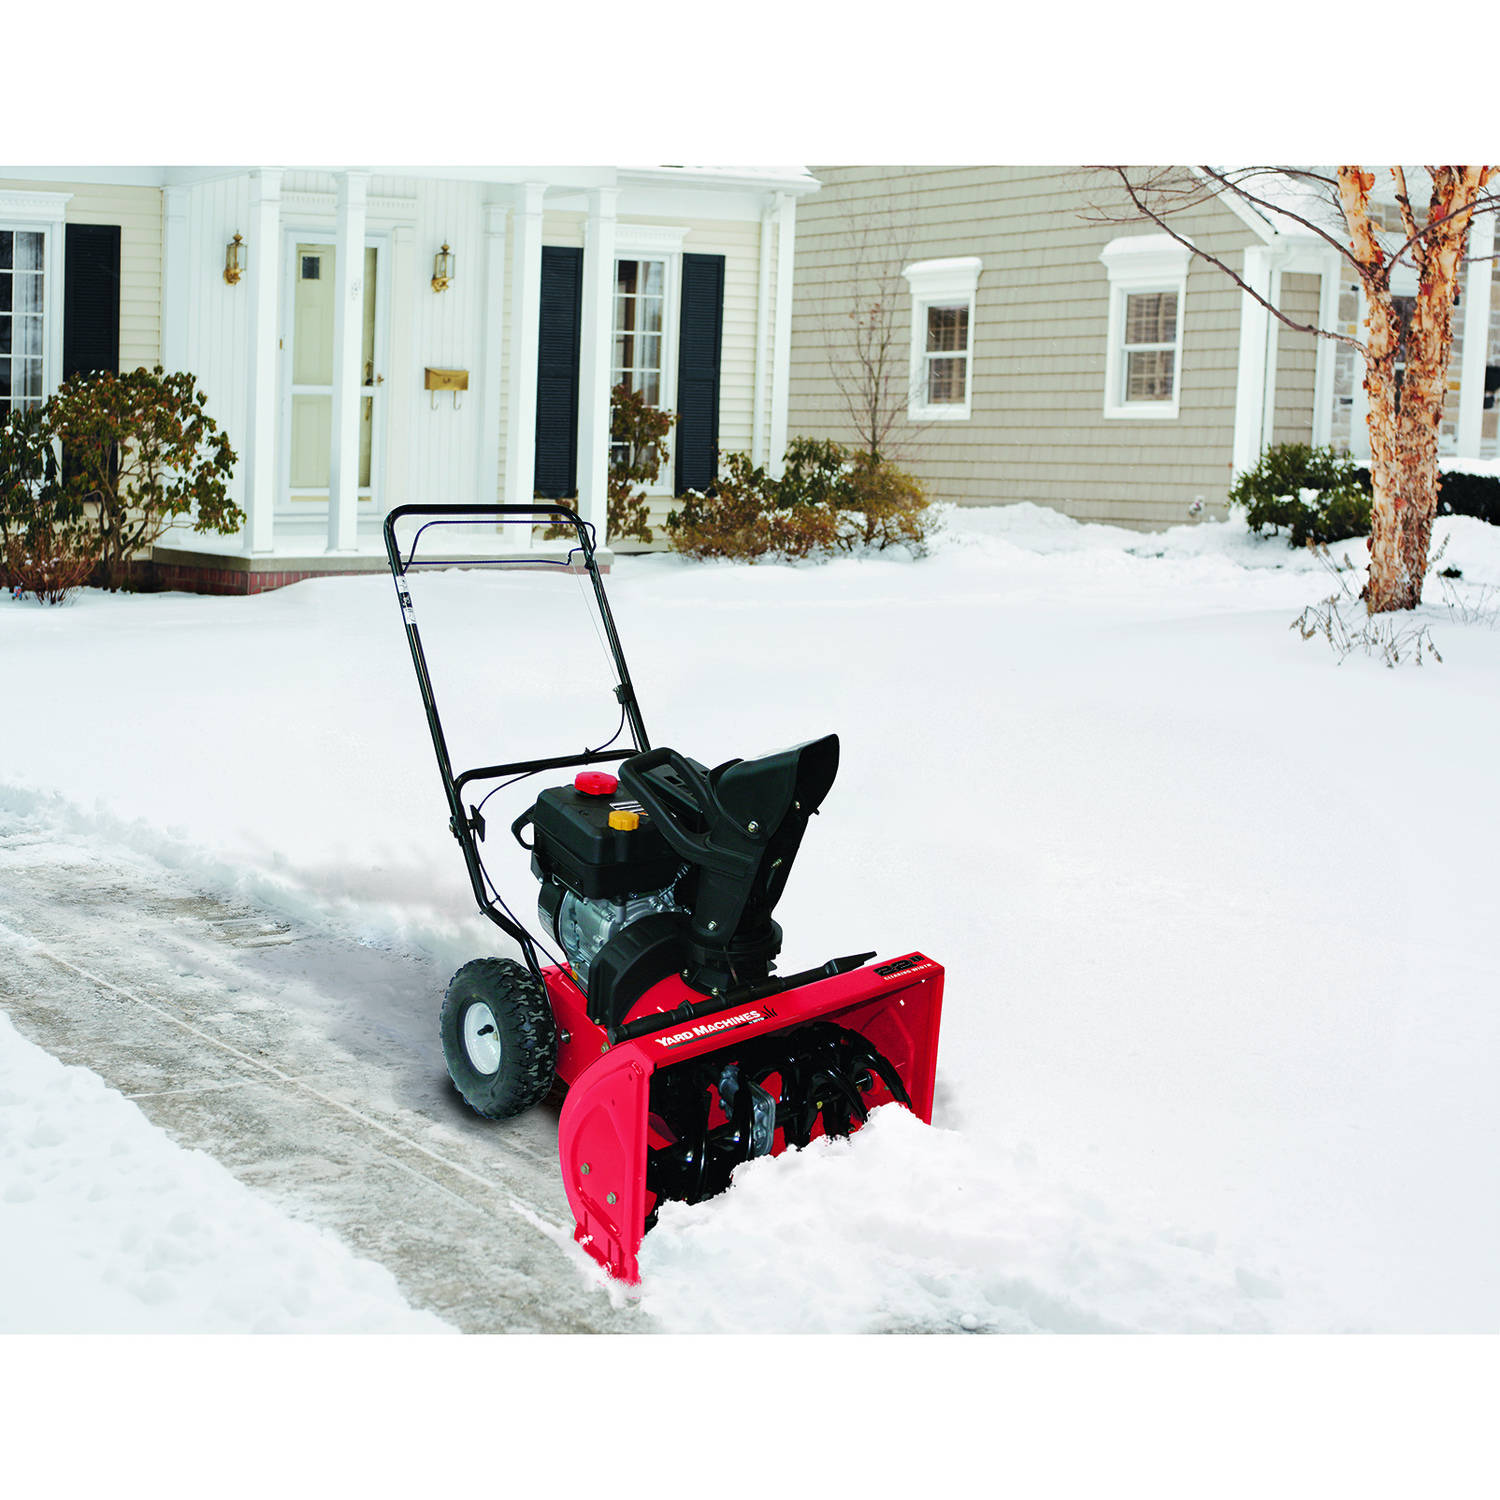 The Caretaker Chronicles: So, I went to buy a snow blower.